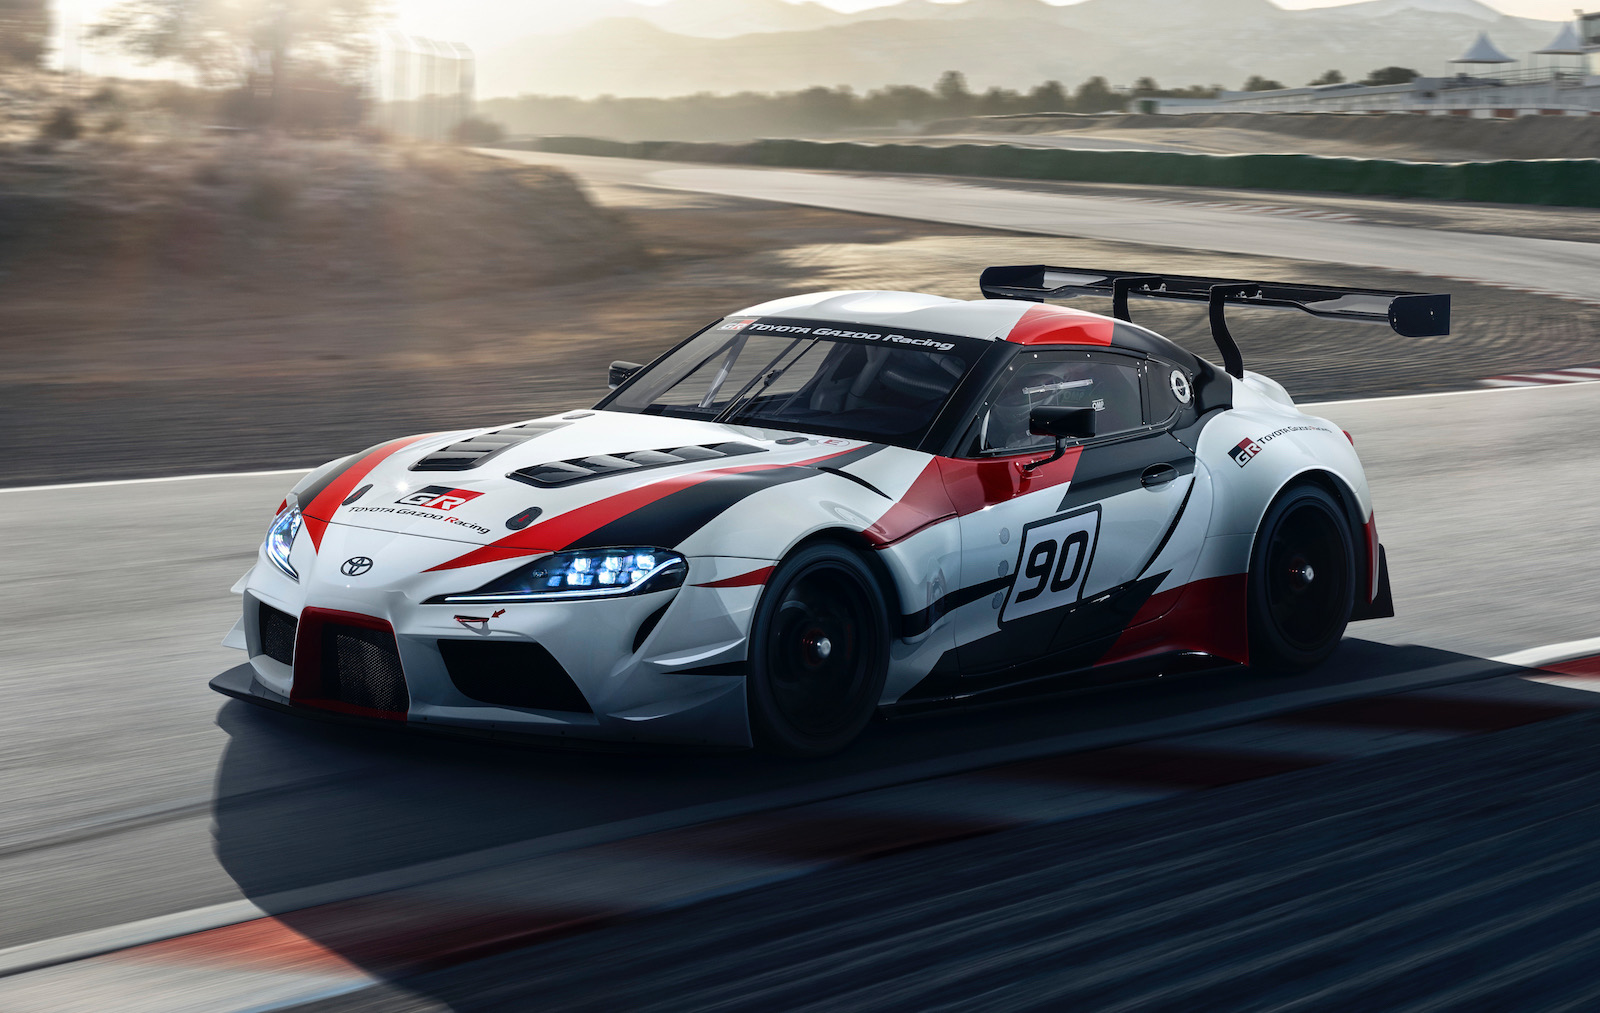 2018 Toyota Gr Supra Racing Concept Previews Upcoming